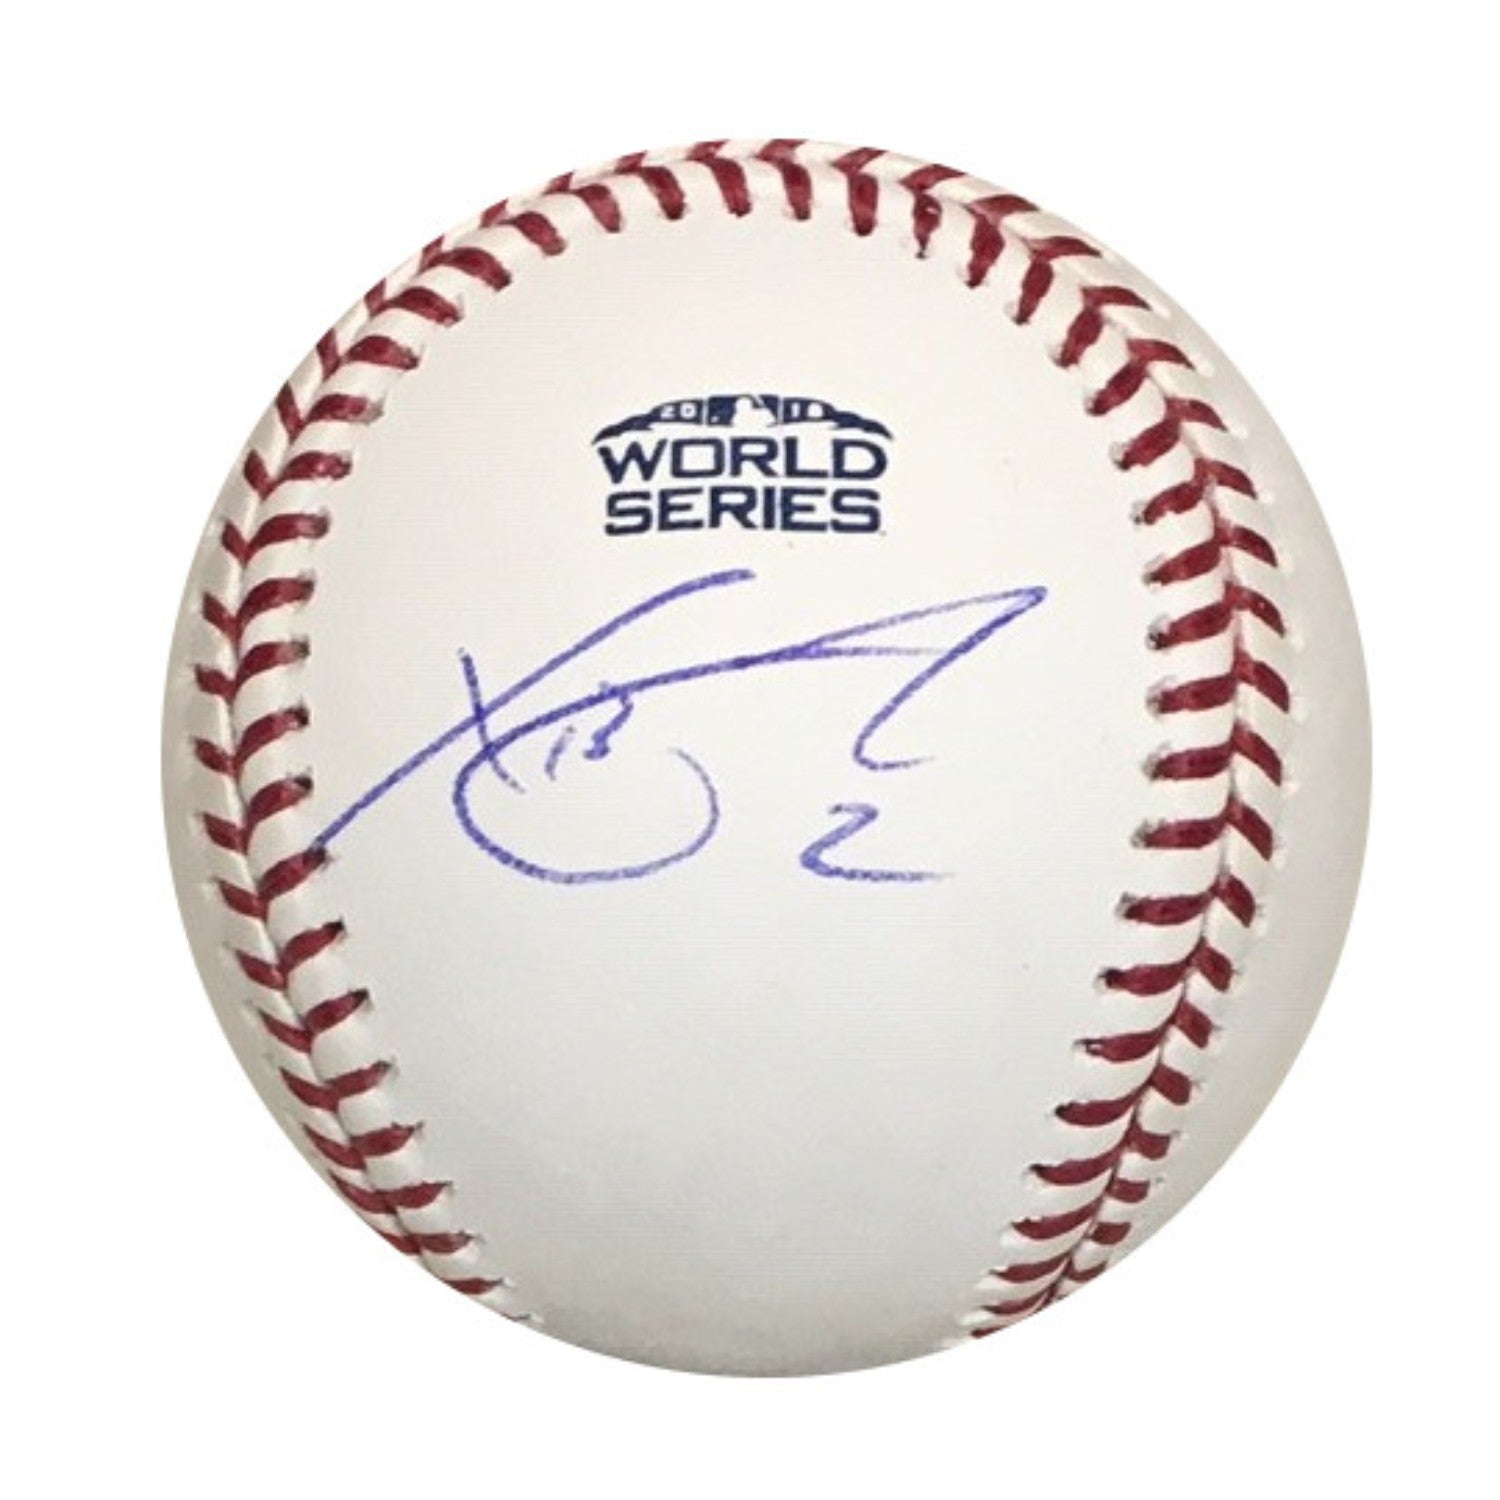 1bb055bbdfee1 Xander Bogaerts Boston Red Sox Autographed 2018 World Series Signed  Baseball PSA DNA COA With UV